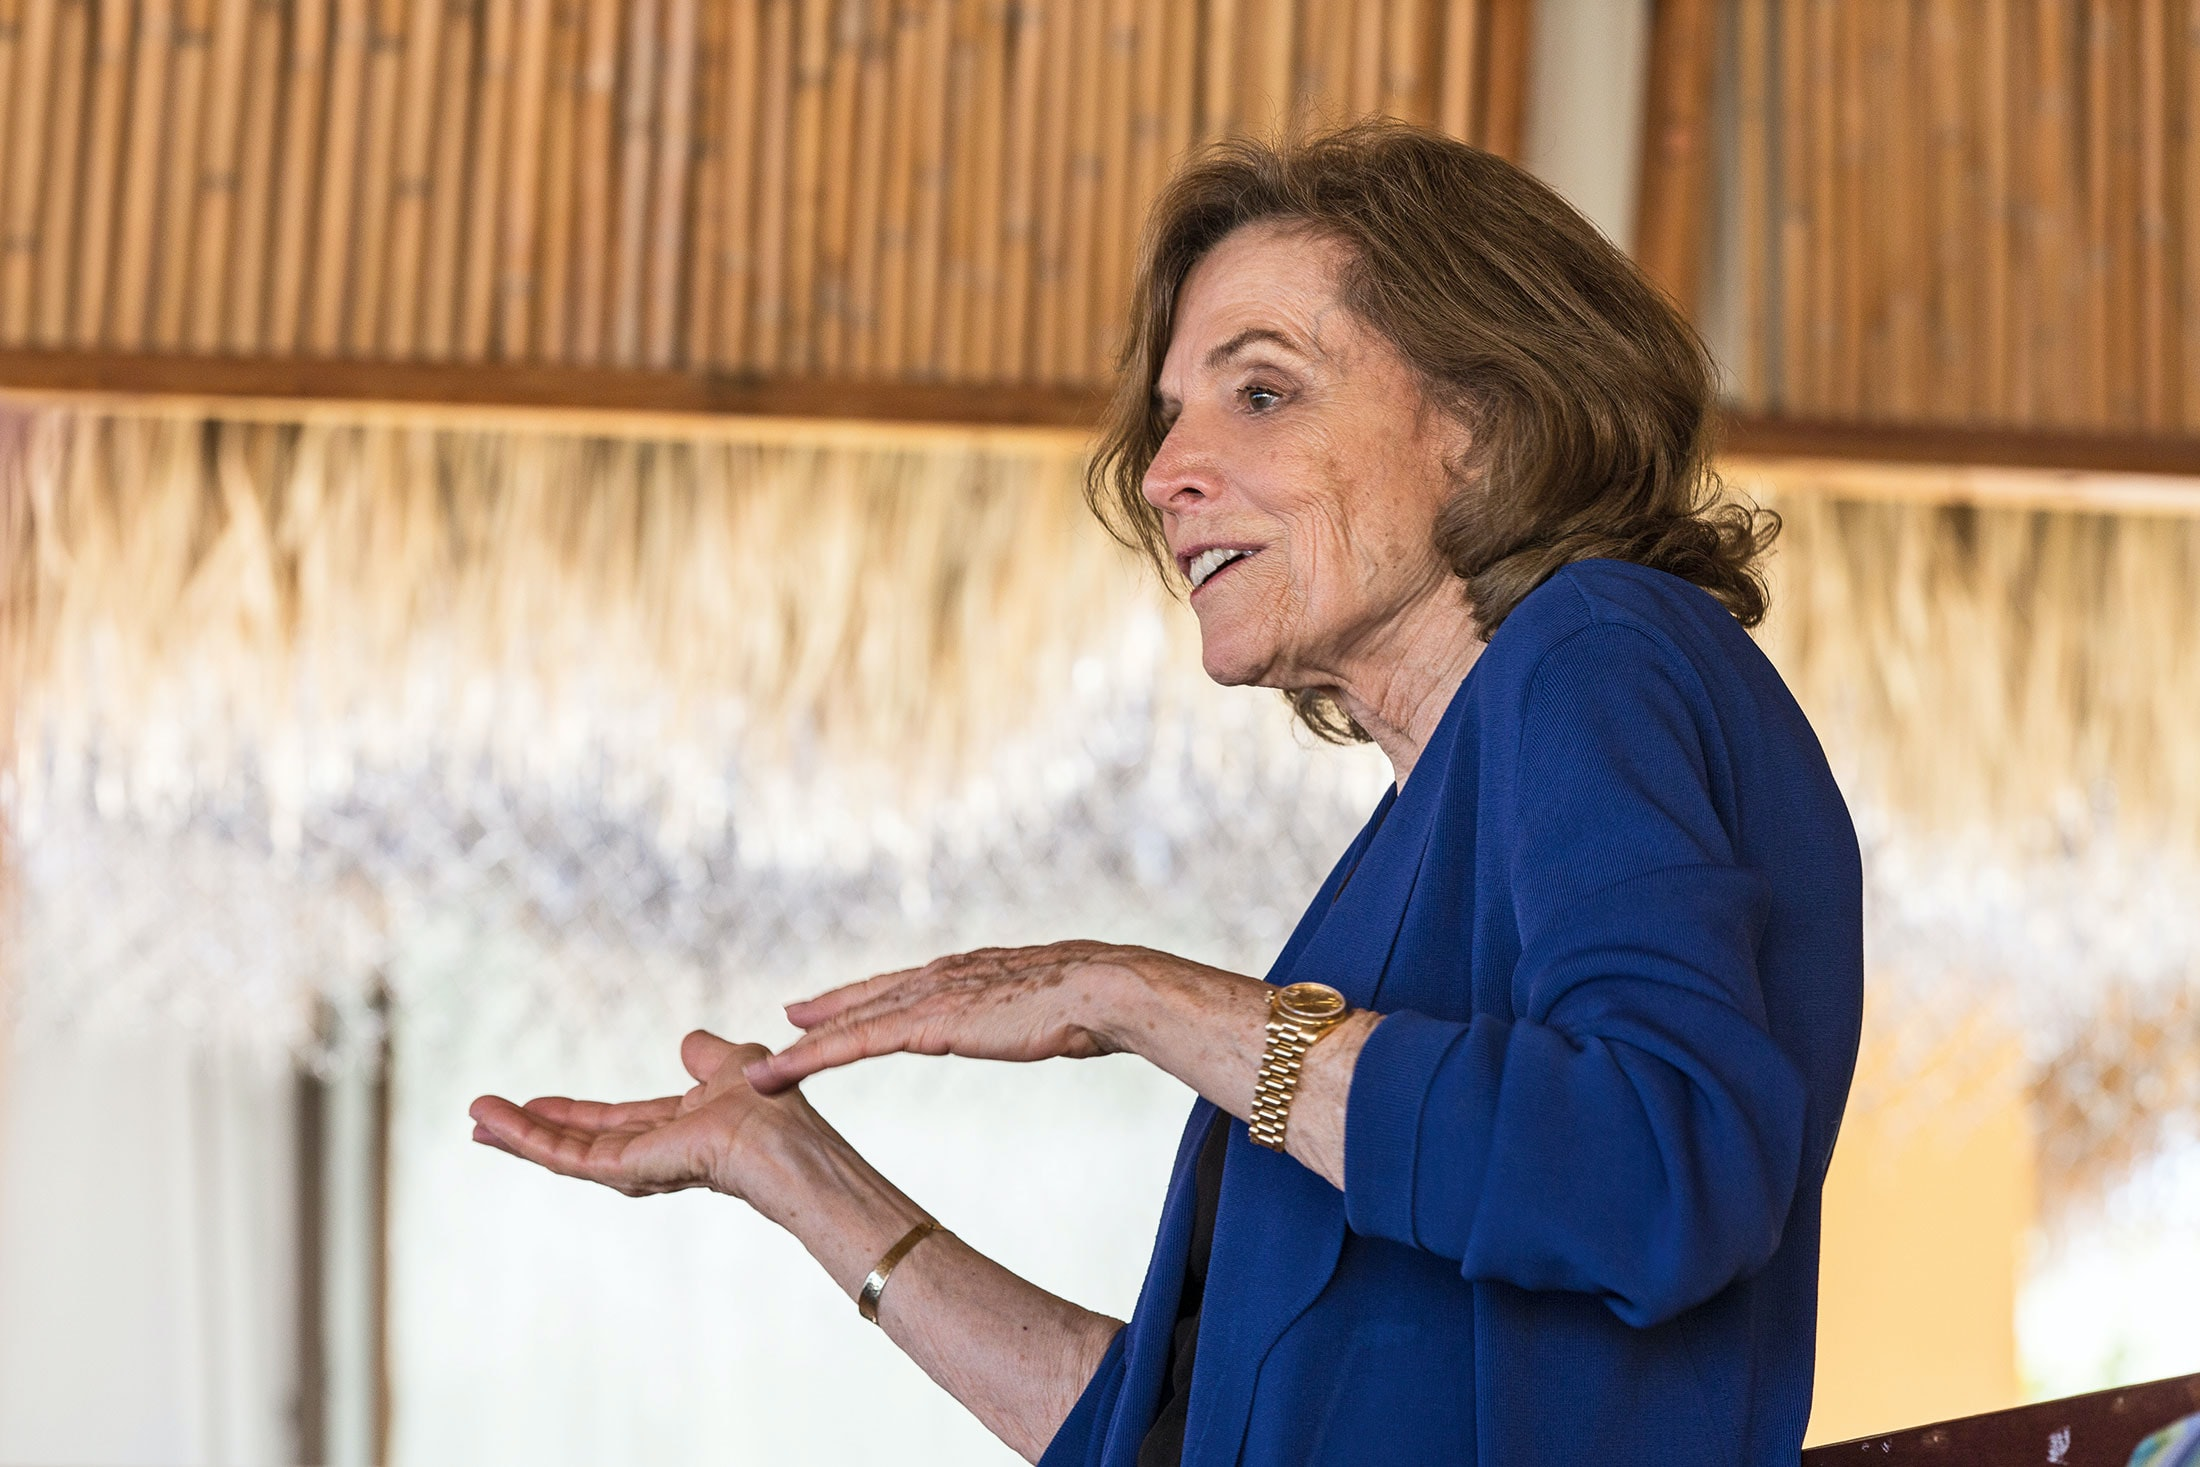 Dispatches: Diving With Her Deepness, Dr. Sylvia Earle SEarle